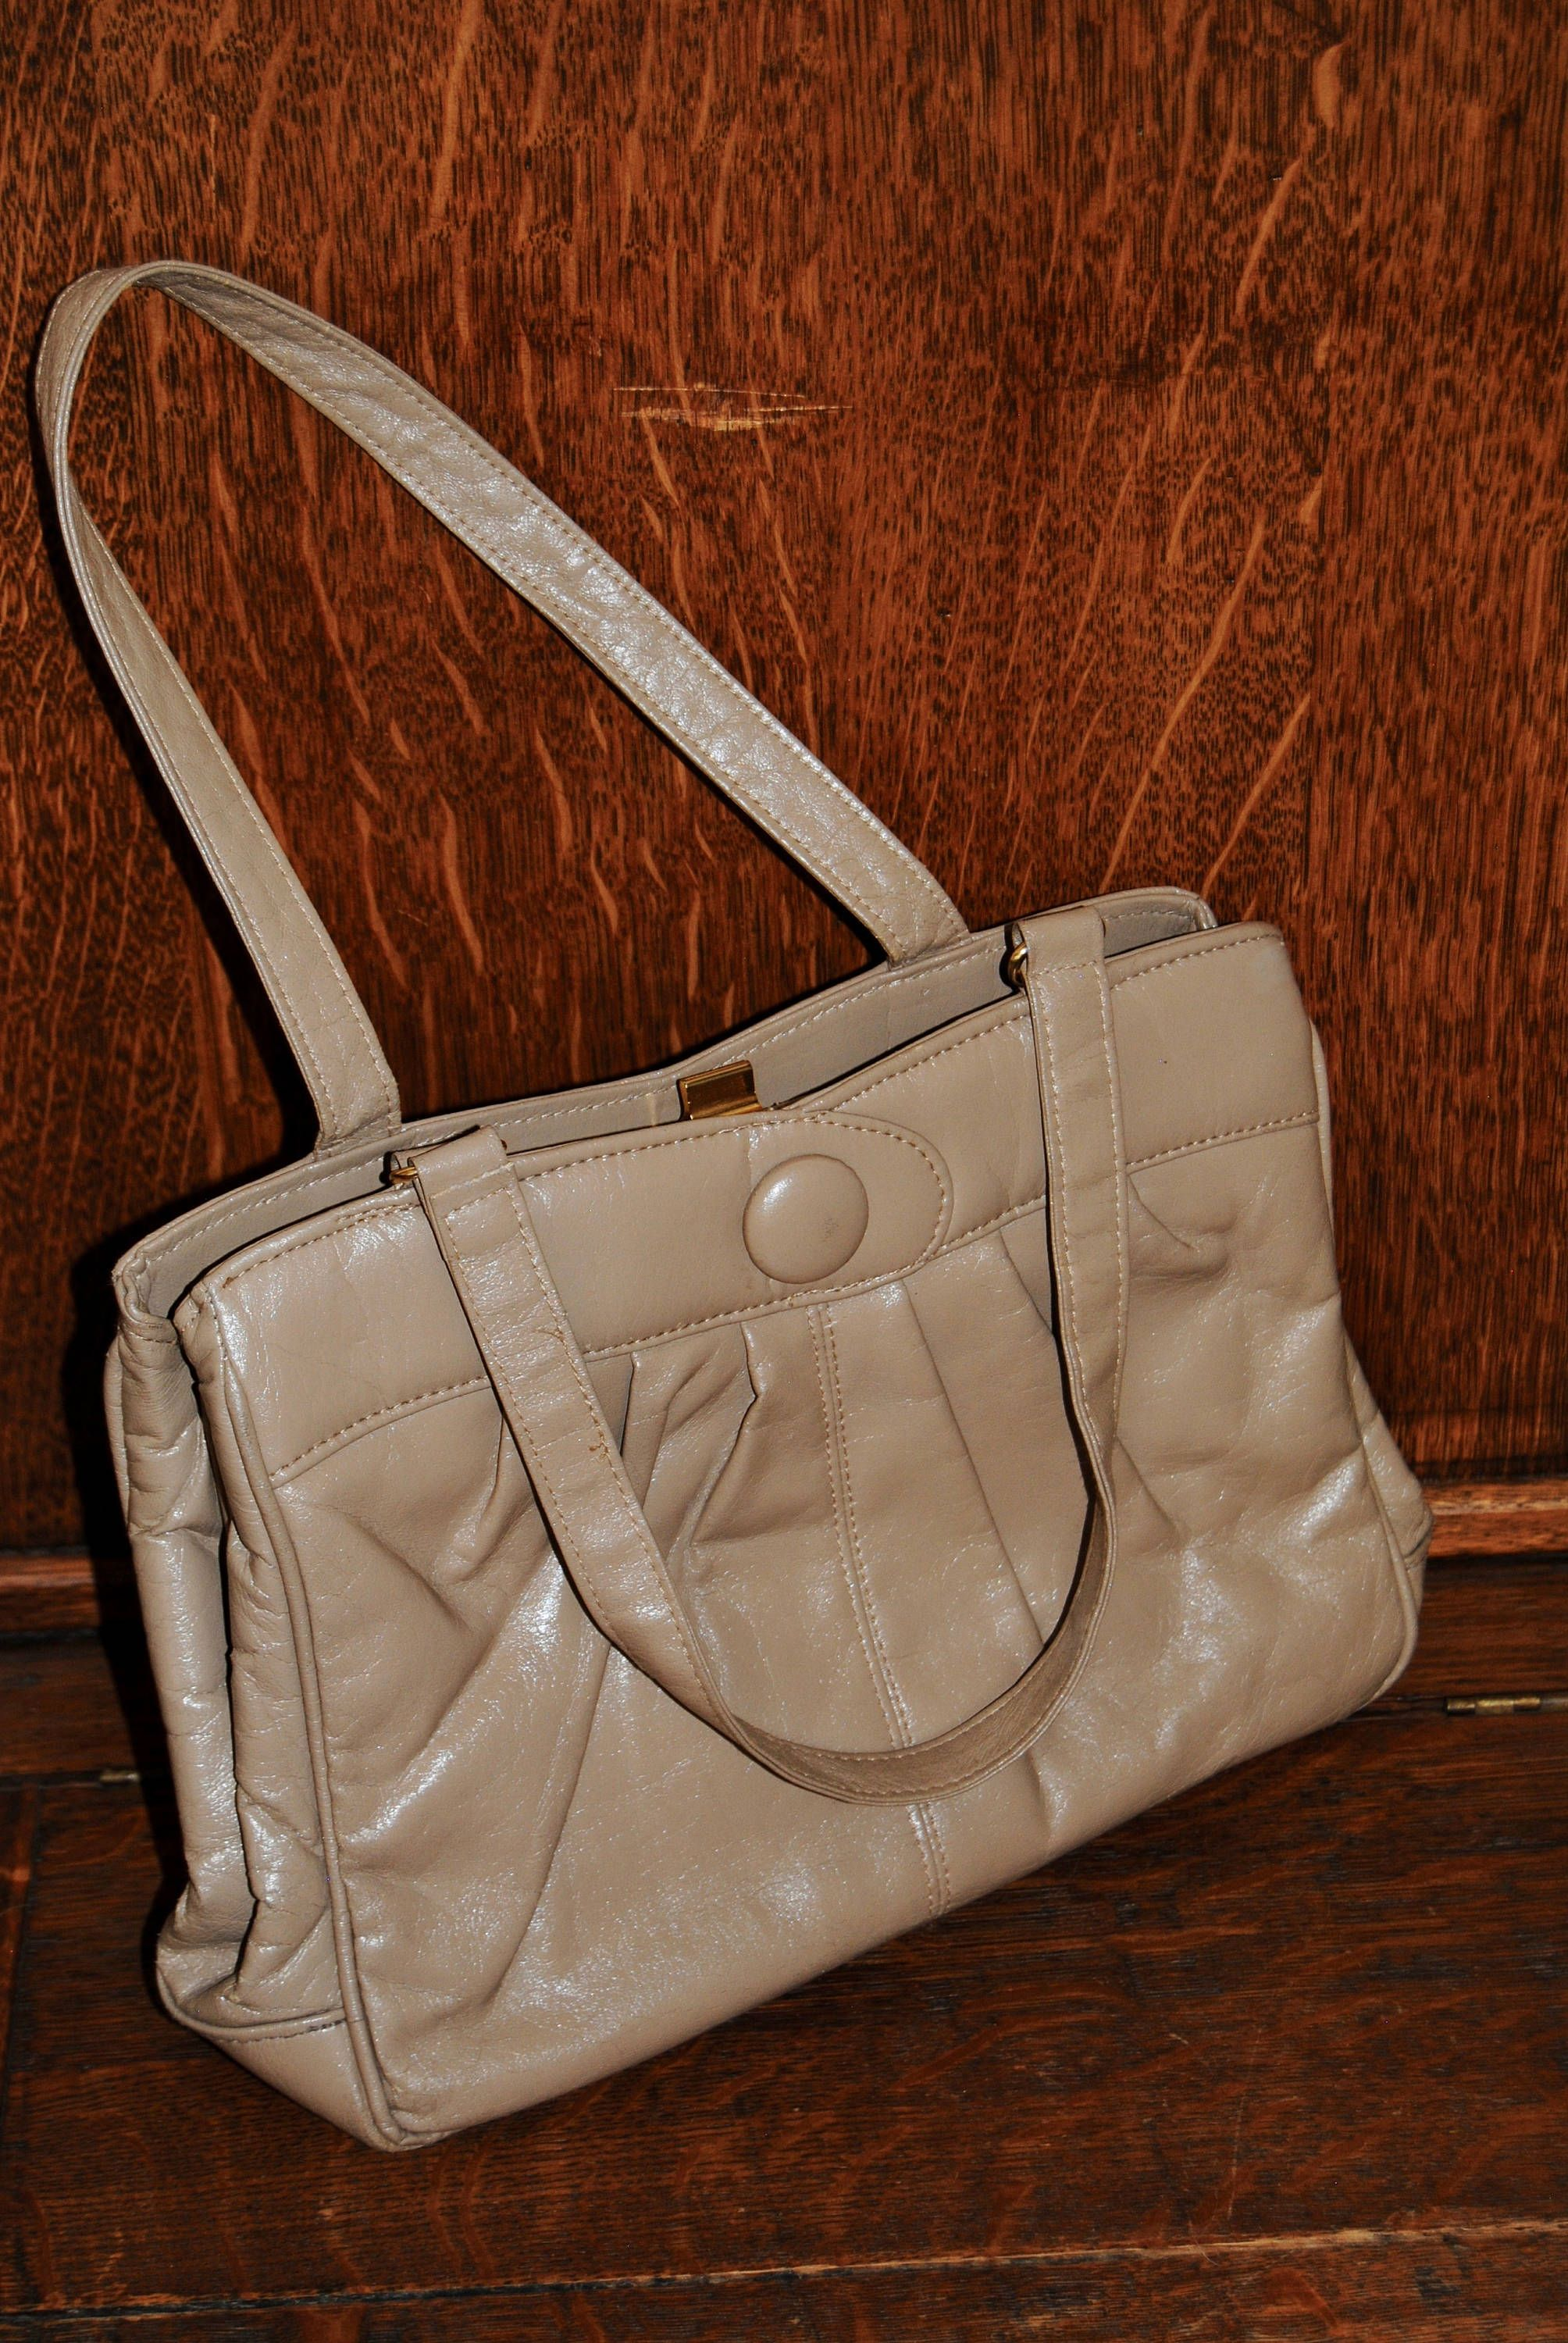 Vintage 1960 S Camel Colored Handbag By Thecheckeredpast On Etsy